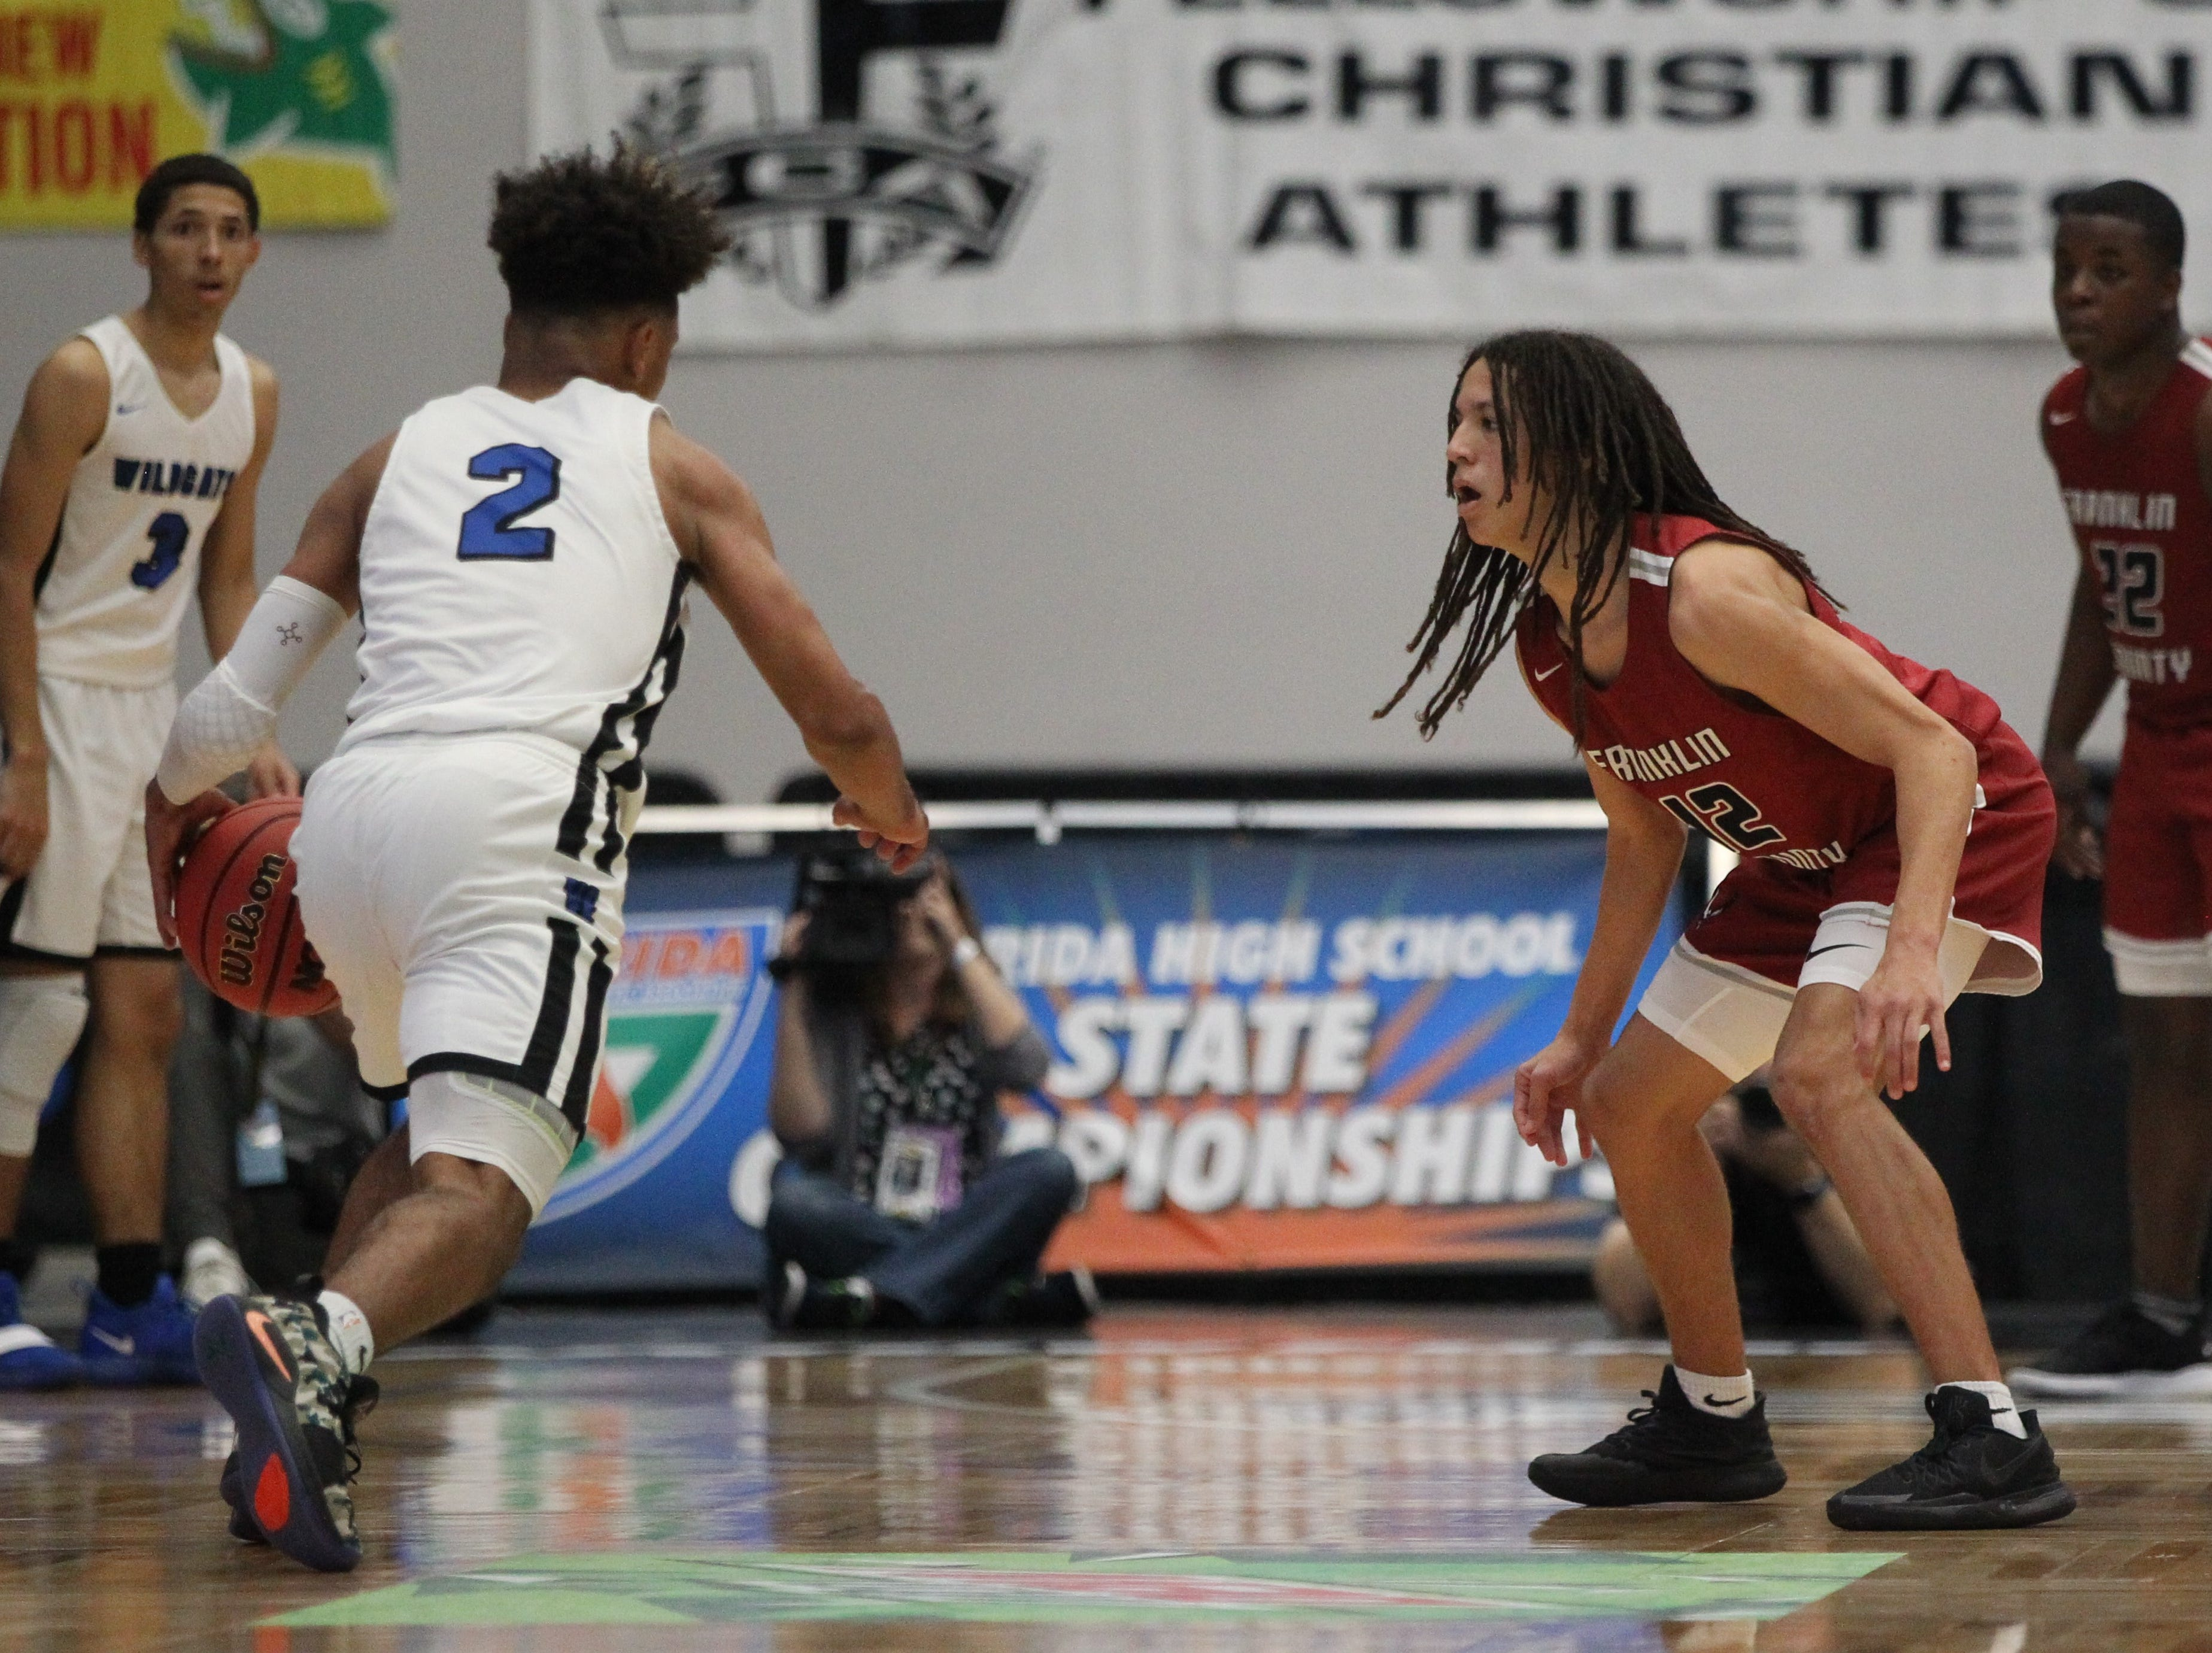 Franklin County lost 76-62 to Wildwood during a Class 1A state semifinal at the RP Funding Center in Lakeland on March 4, 2019.